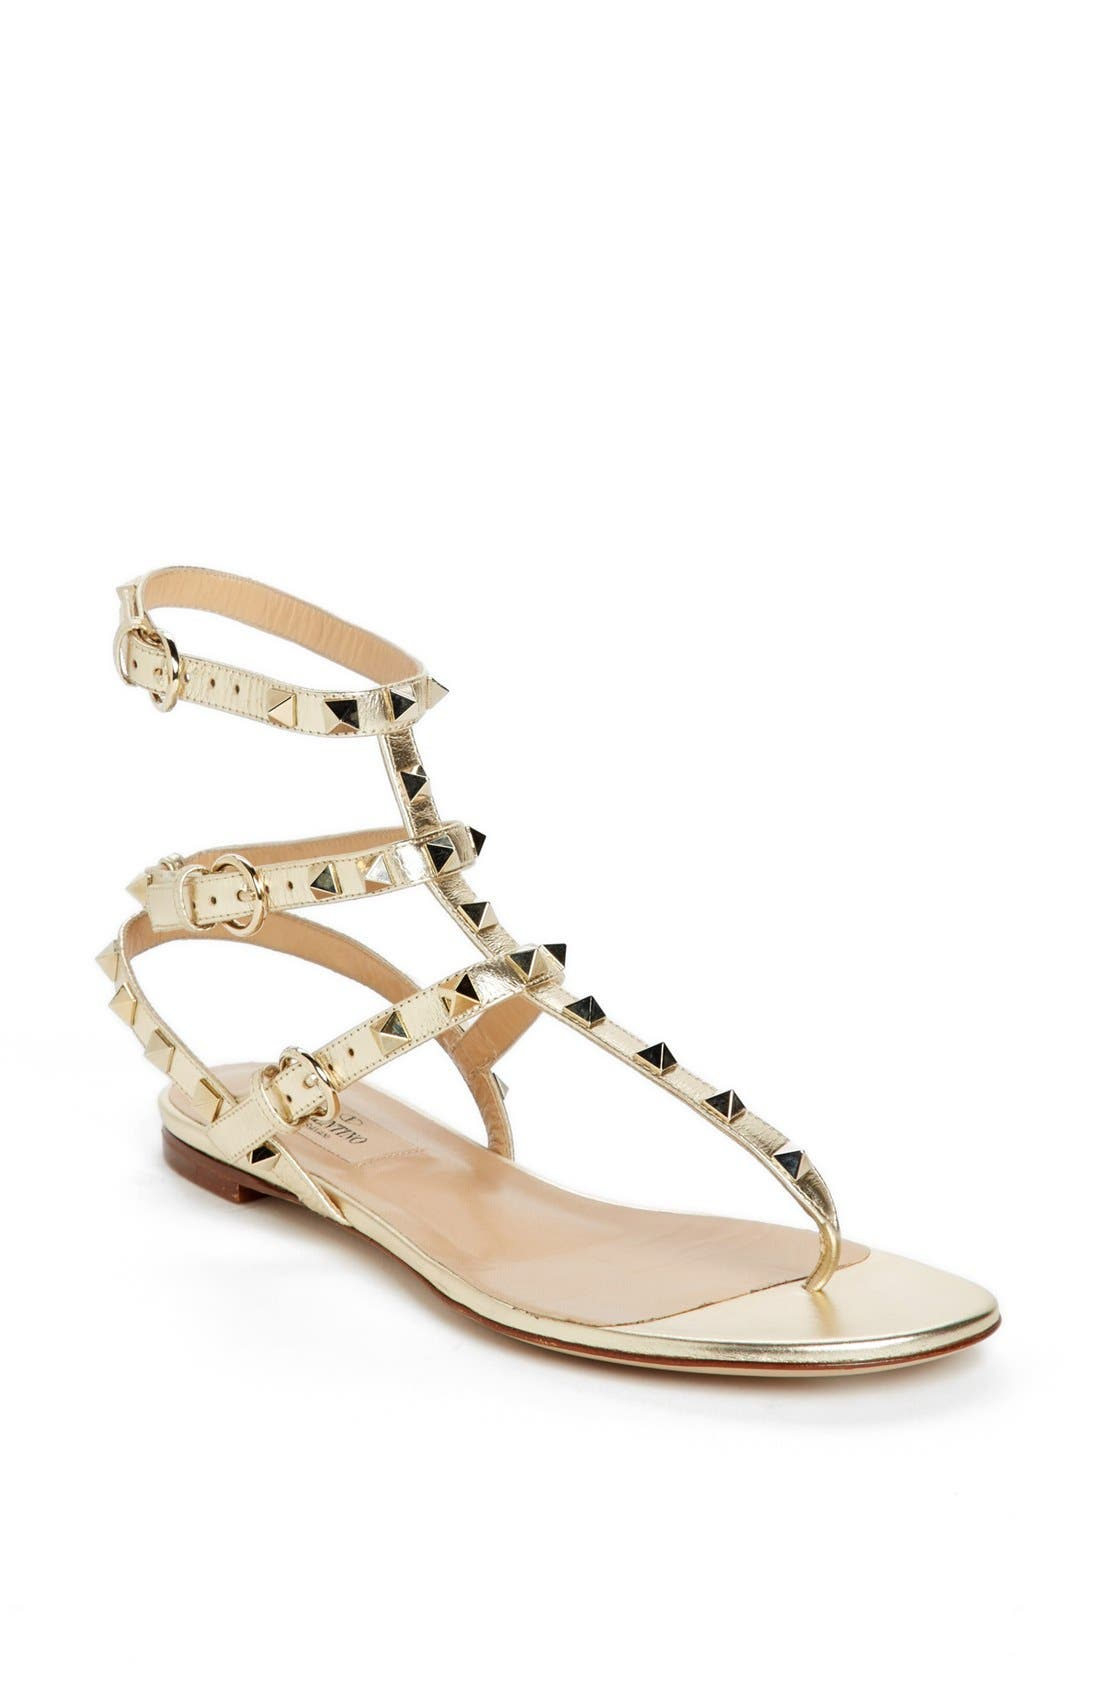 Alternate Image 1 Selected - Valentino 'Rockstud Triple Strap' Thong Sandal